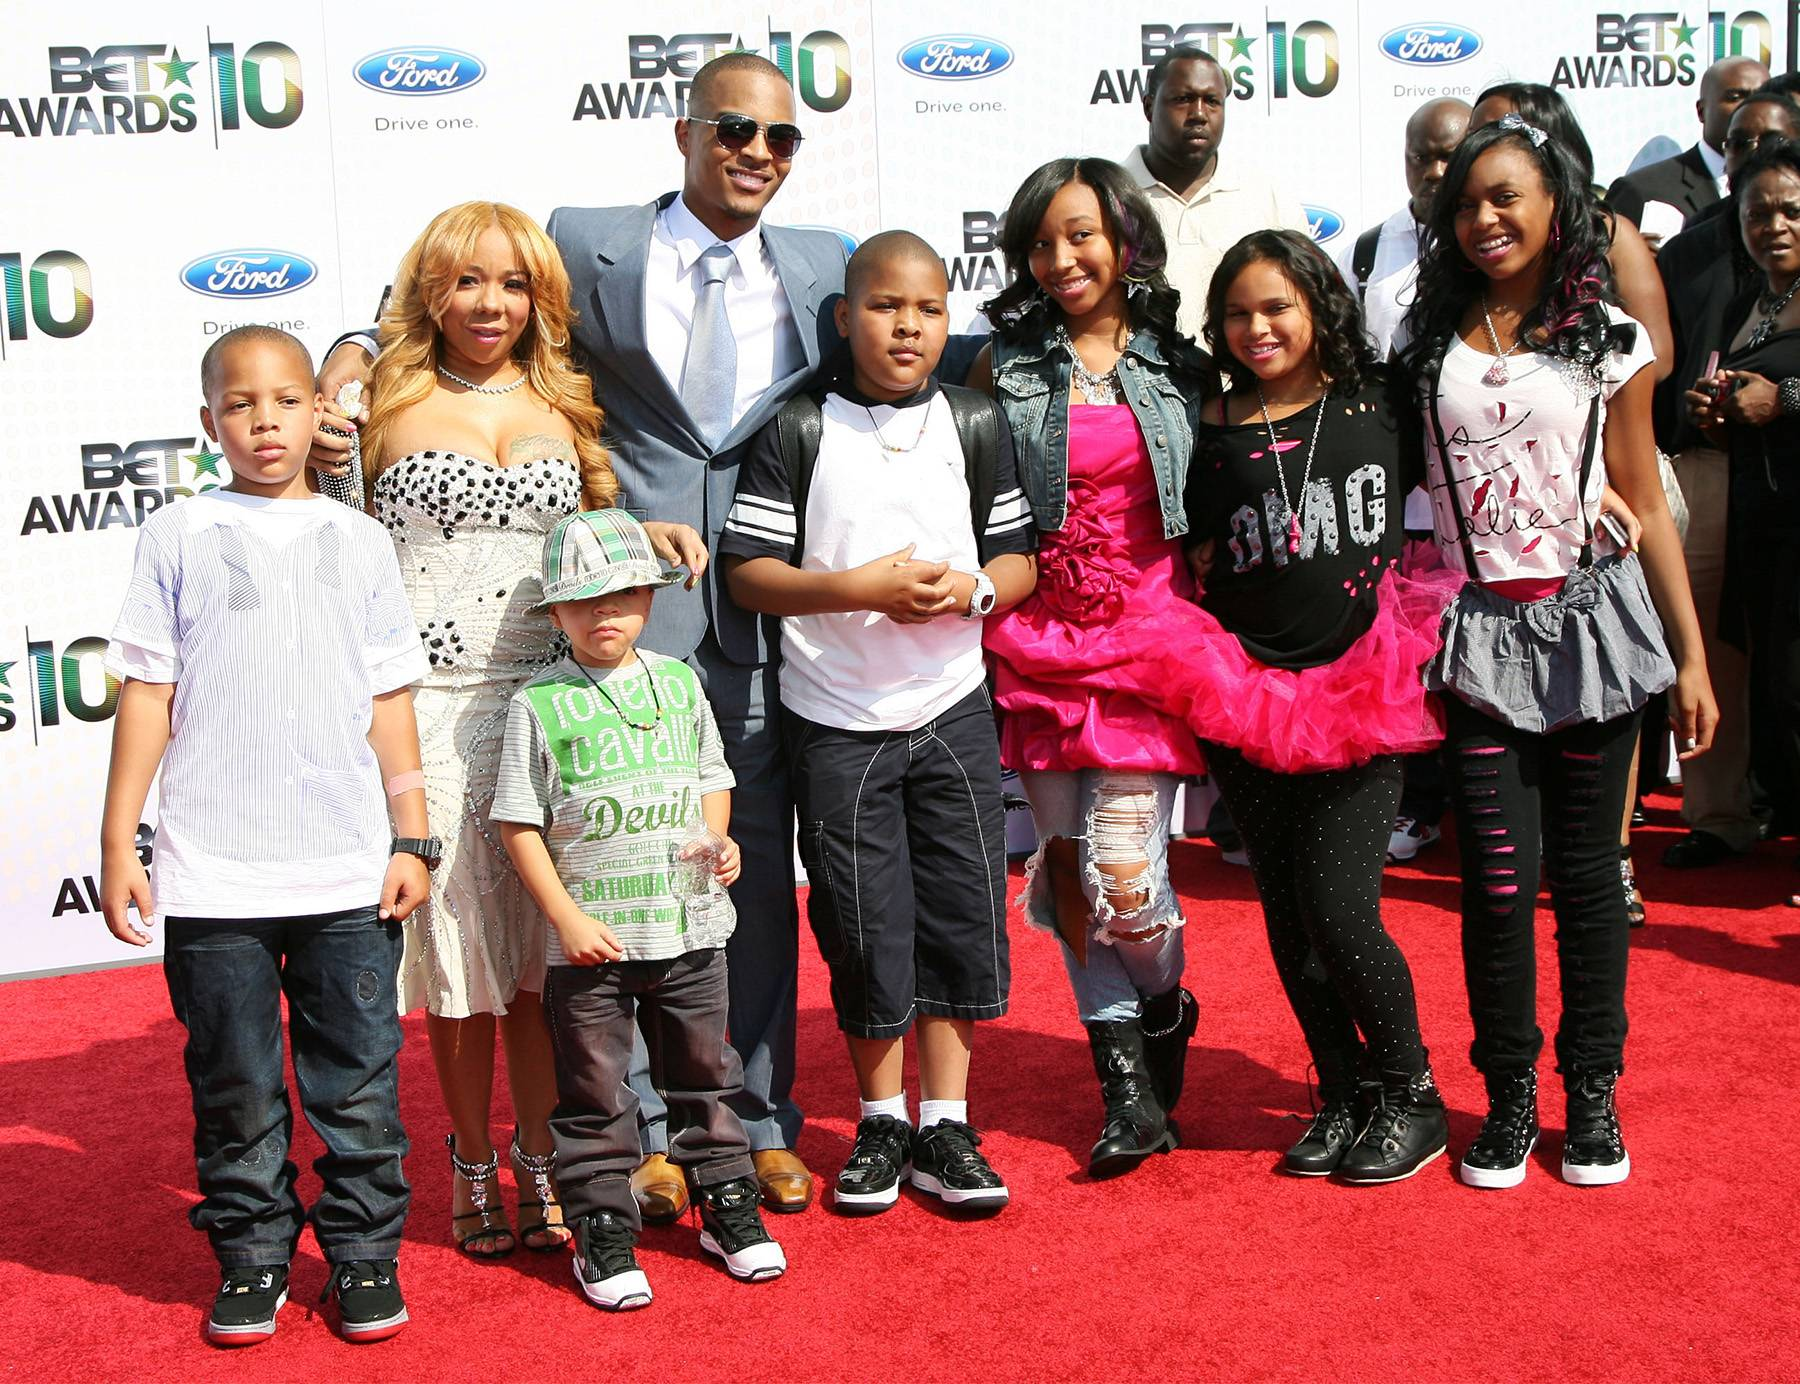 T.I. and the Rest of the Harris Family - The hustle never stops.(Photo: Maury Phillips/WireImage)